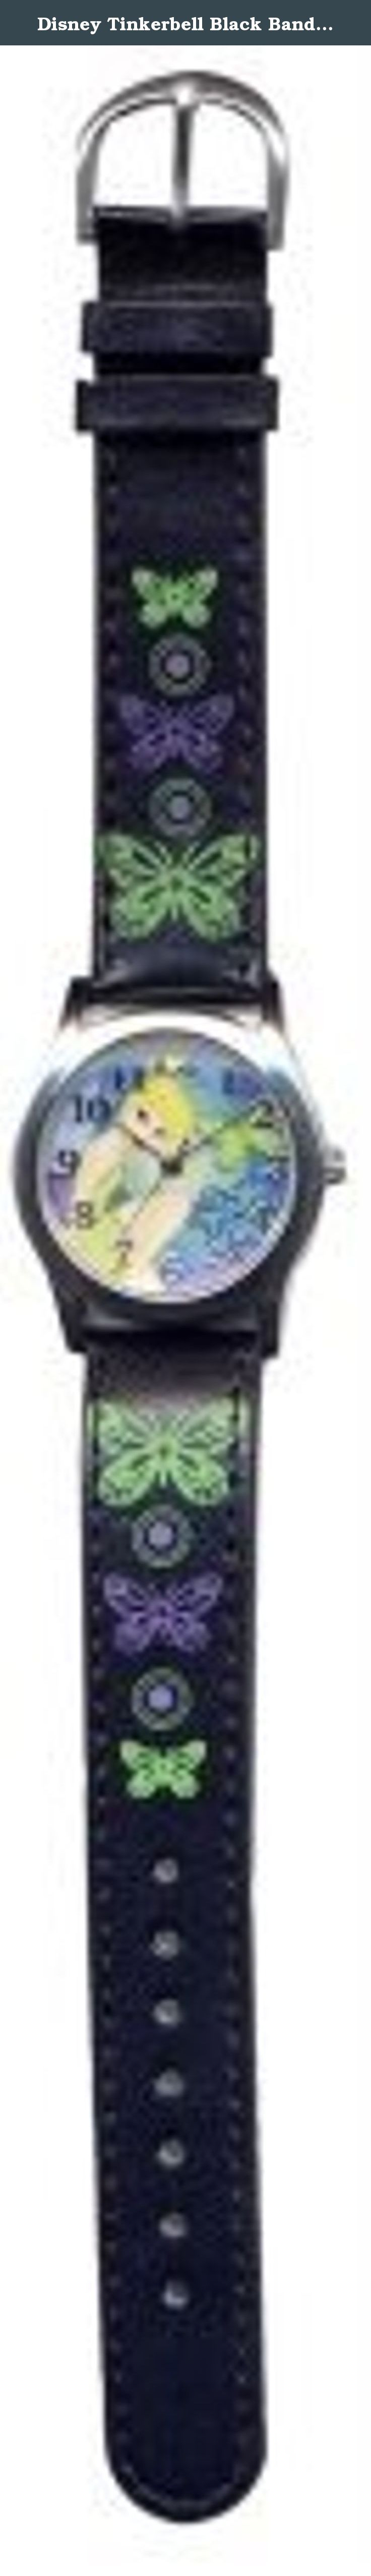 """Disney Tinkerbell Black Band Watch #41368A. Tinker Bell is a fictional character in J.M. Barrie's play and subsequent novel Peter and Wendy, as well as numerous adaptations including the widely known animated Disney film Peter Pan. In the original book and play, Tinker Bell is described as a common fairy who mends pots and kettles, i.e. a tinker, and is often referred to simply as """"Tink"""". Though sometimes ill-behaved and vindictive, at other times she is helpful and kind to Peter (for…"""